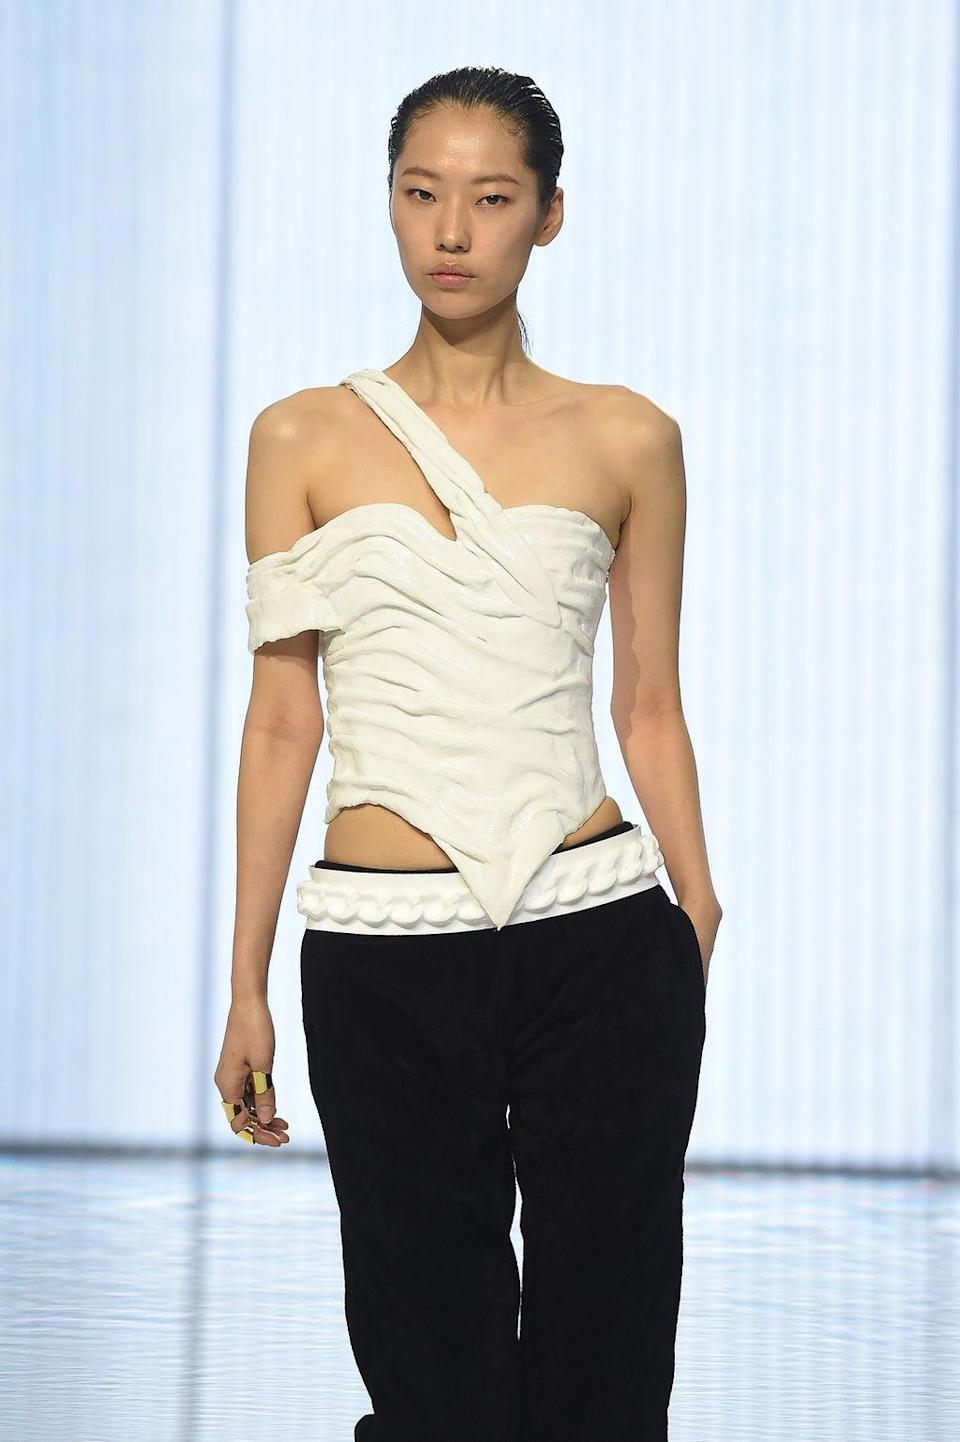 A model on the runway at Balmain for the brand's spring/summer 2022 show. (Getty Images)